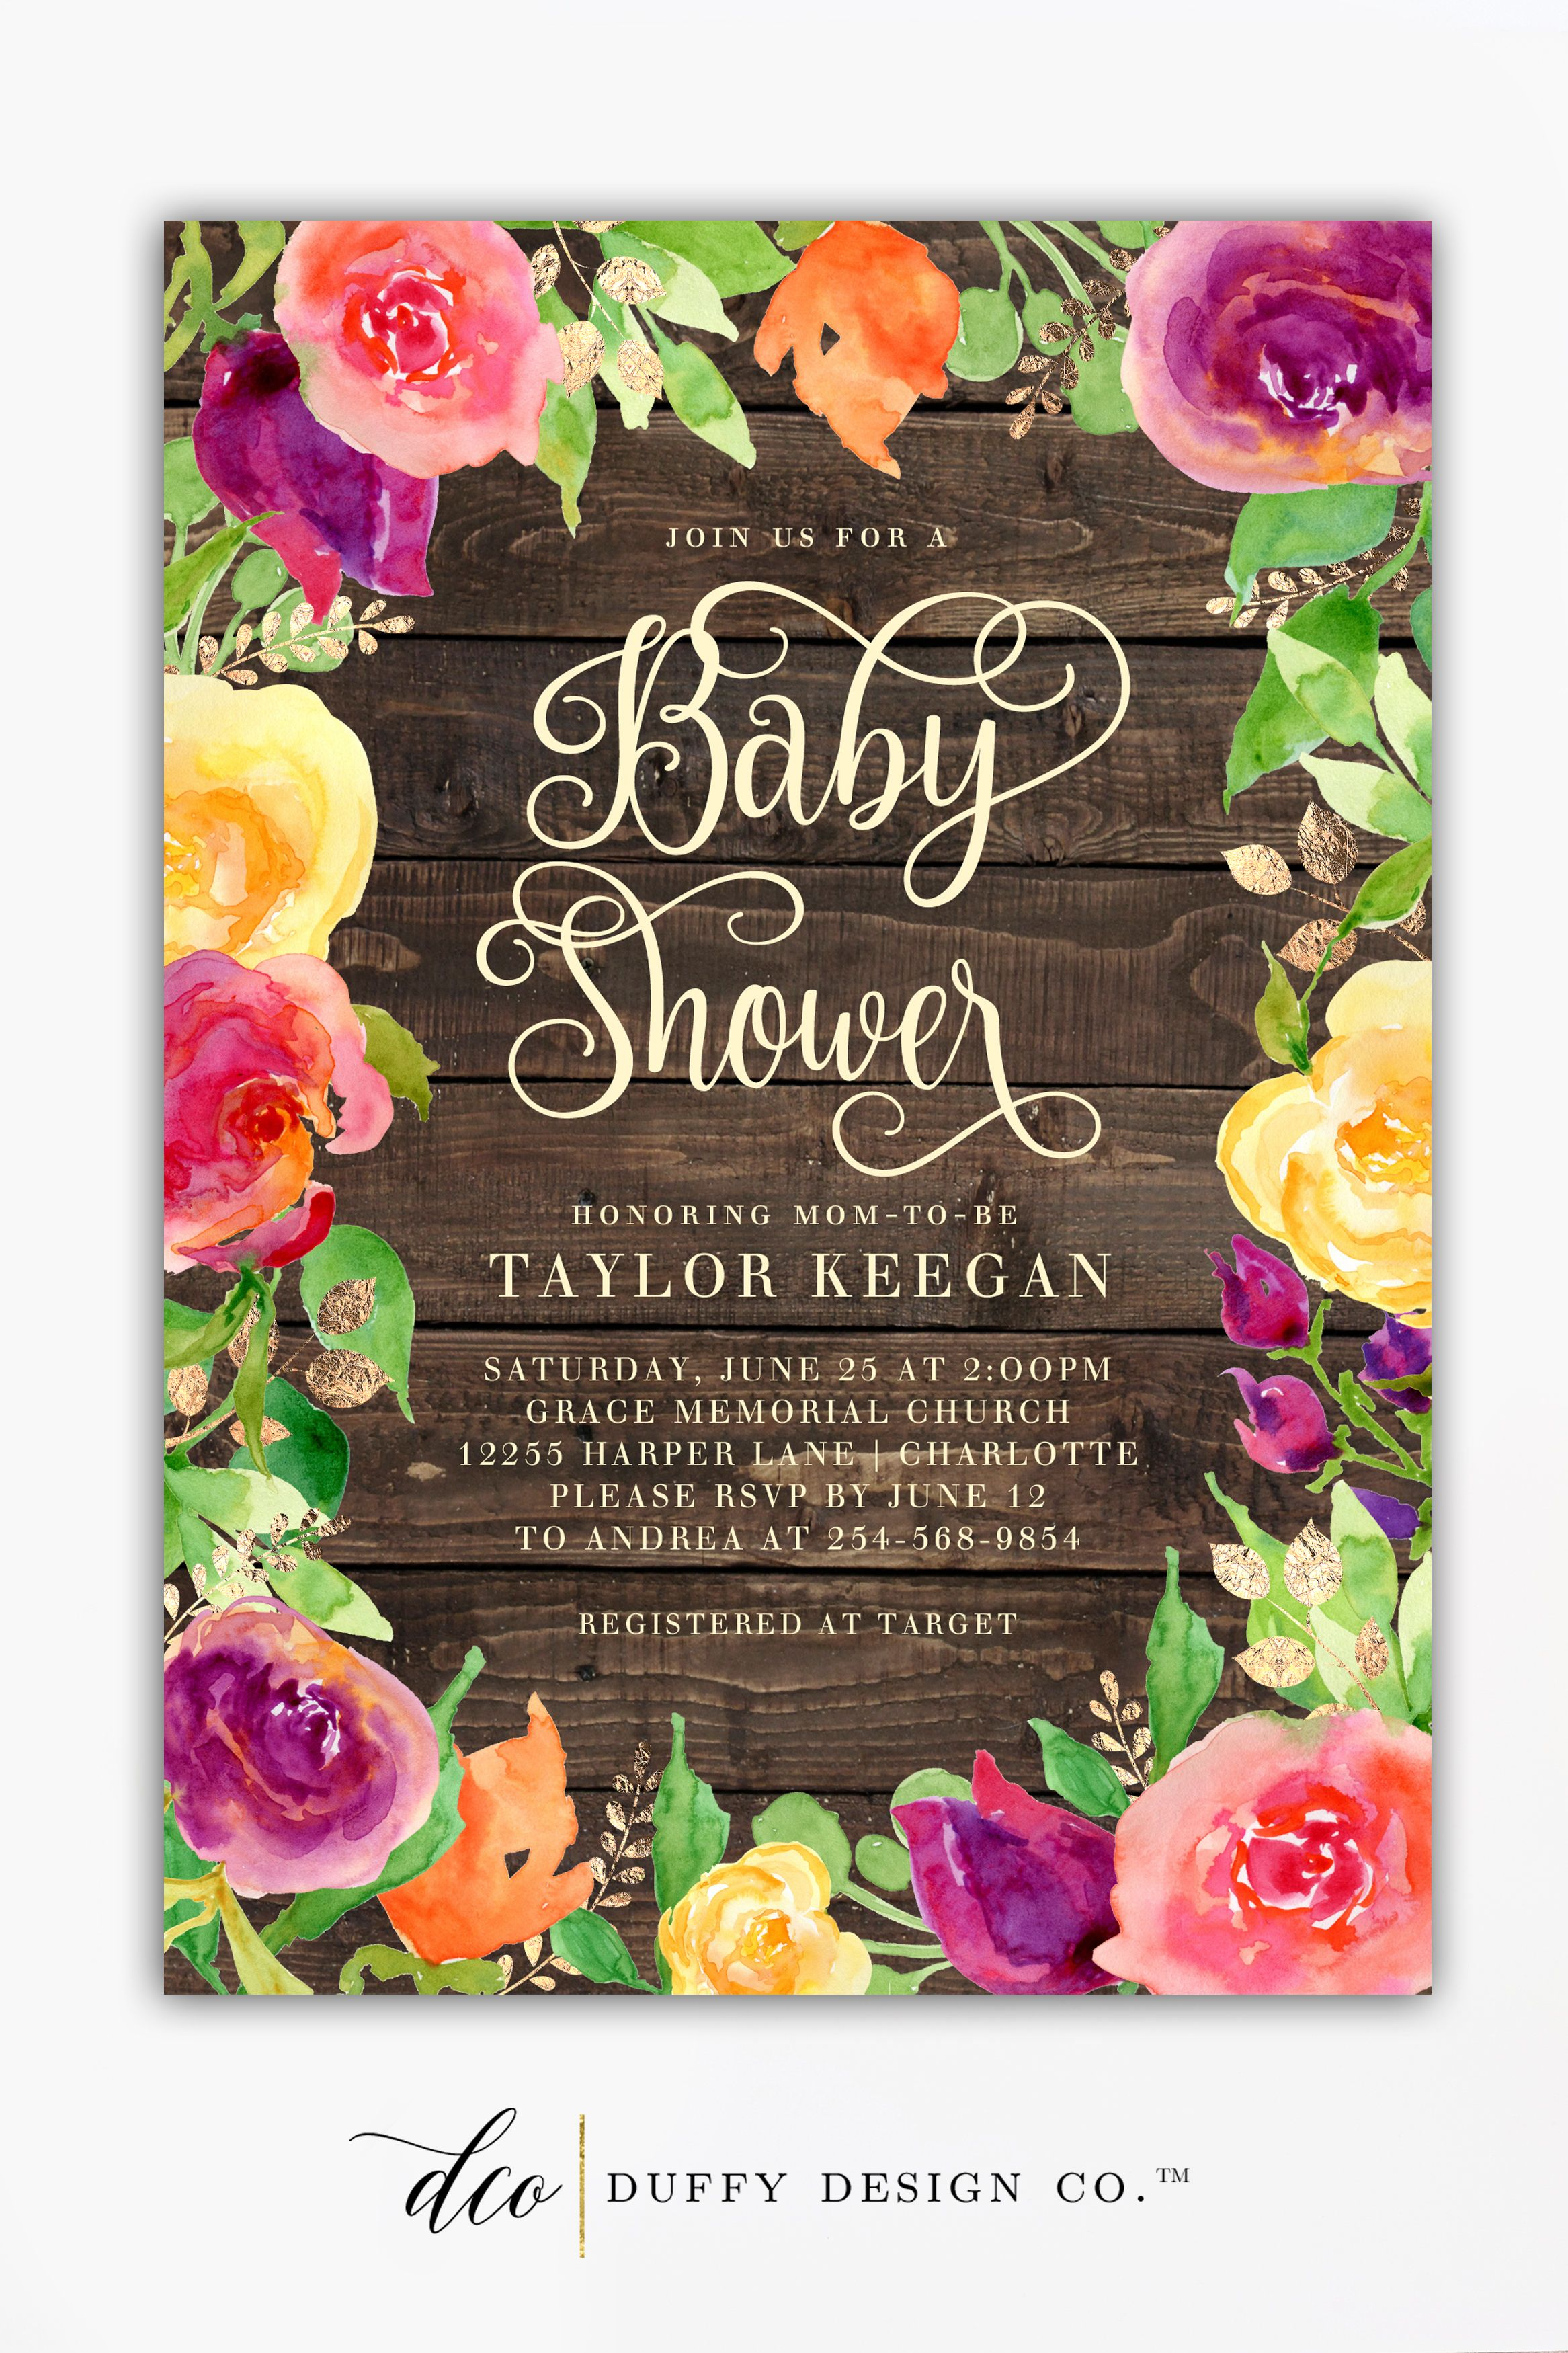 clever baby shower invitation wording%0A Gorgeous baby shower invitation with wood texture  watercolor florals and  gold accents  Perfect for